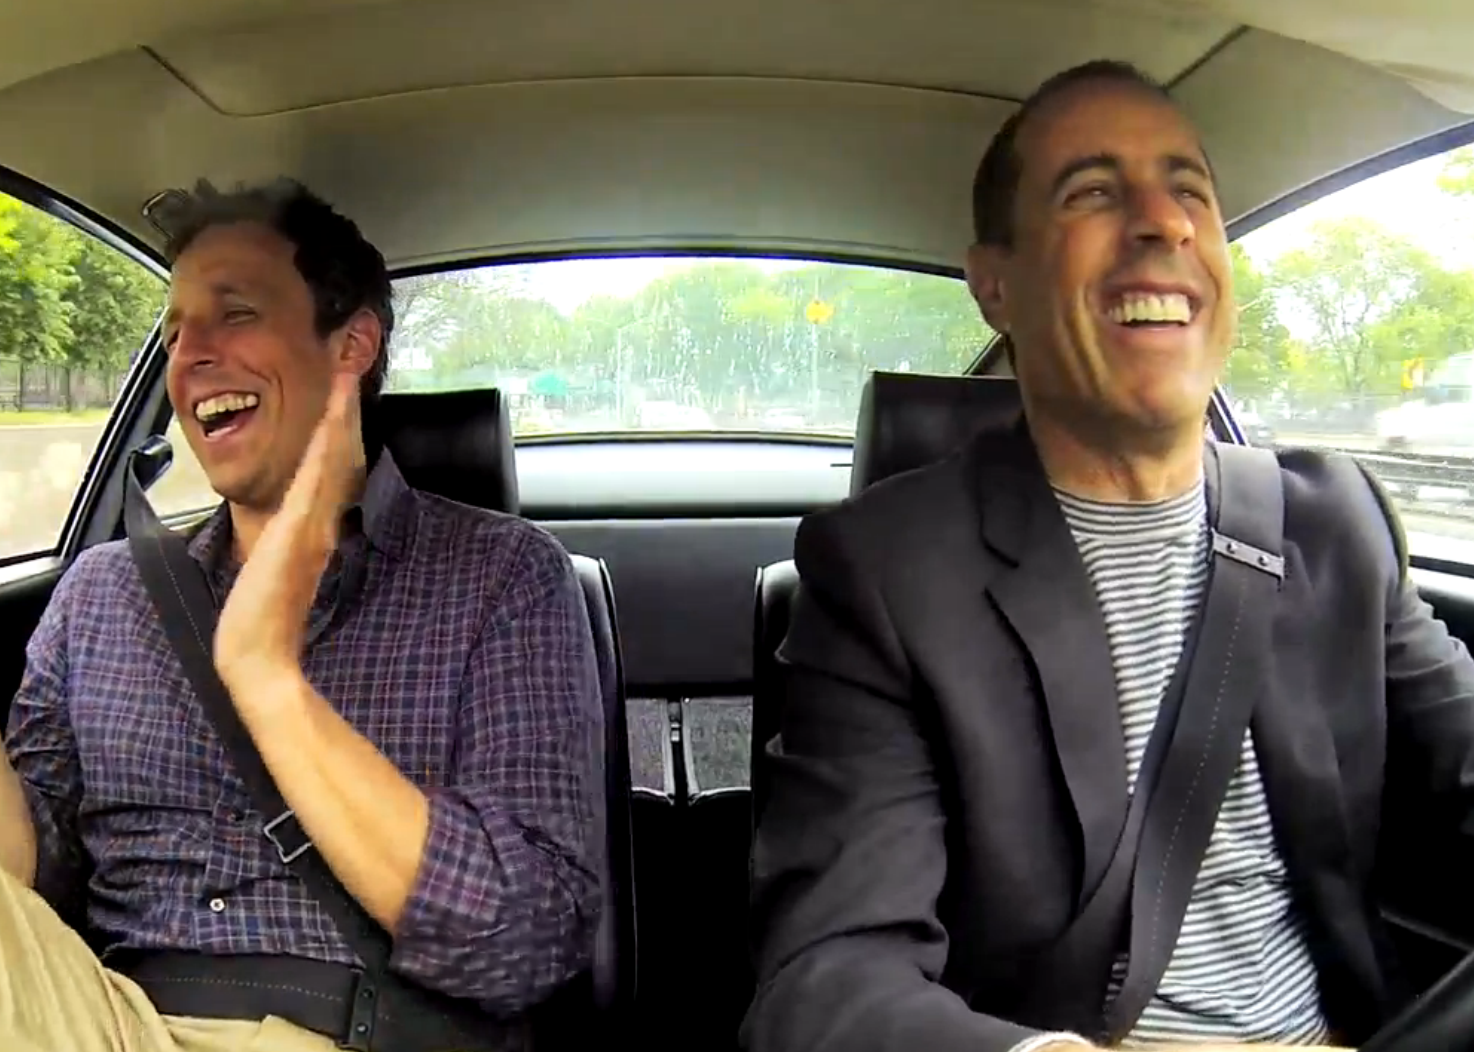 wallpaper free download comedians in cars getting coffee. Black Bedroom Furniture Sets. Home Design Ideas